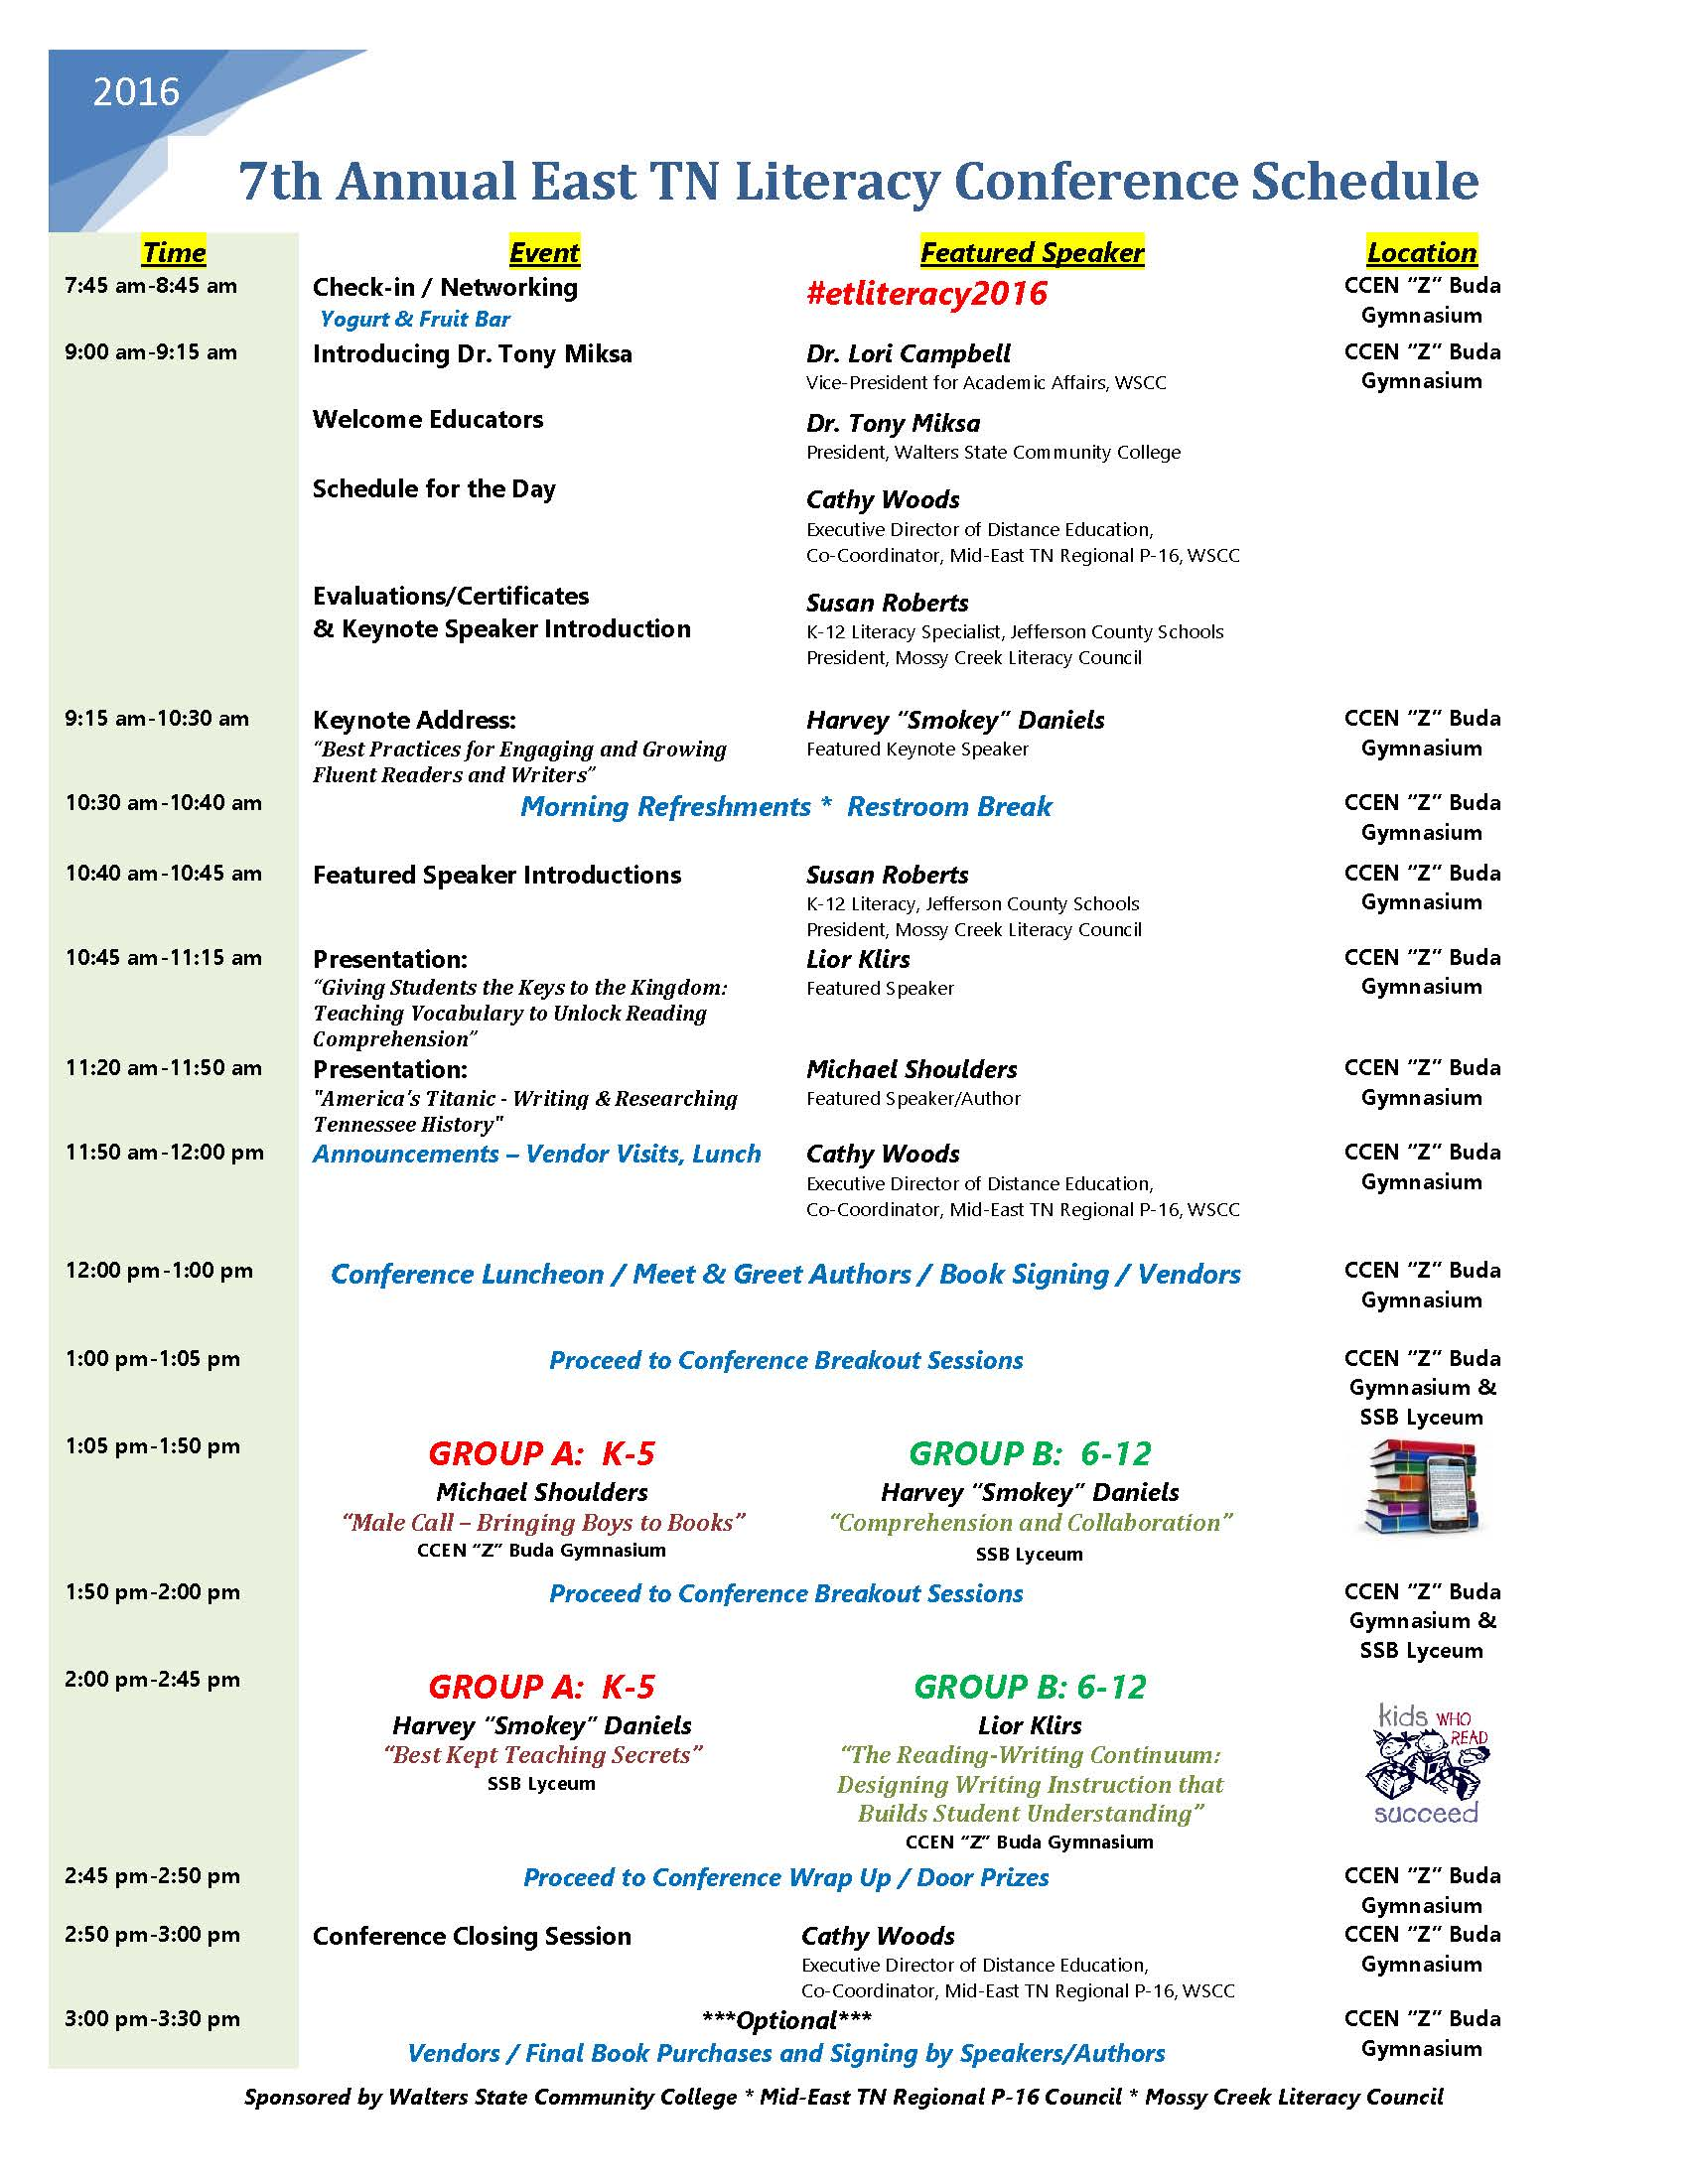 7th Annual Literacy Conference Schedule